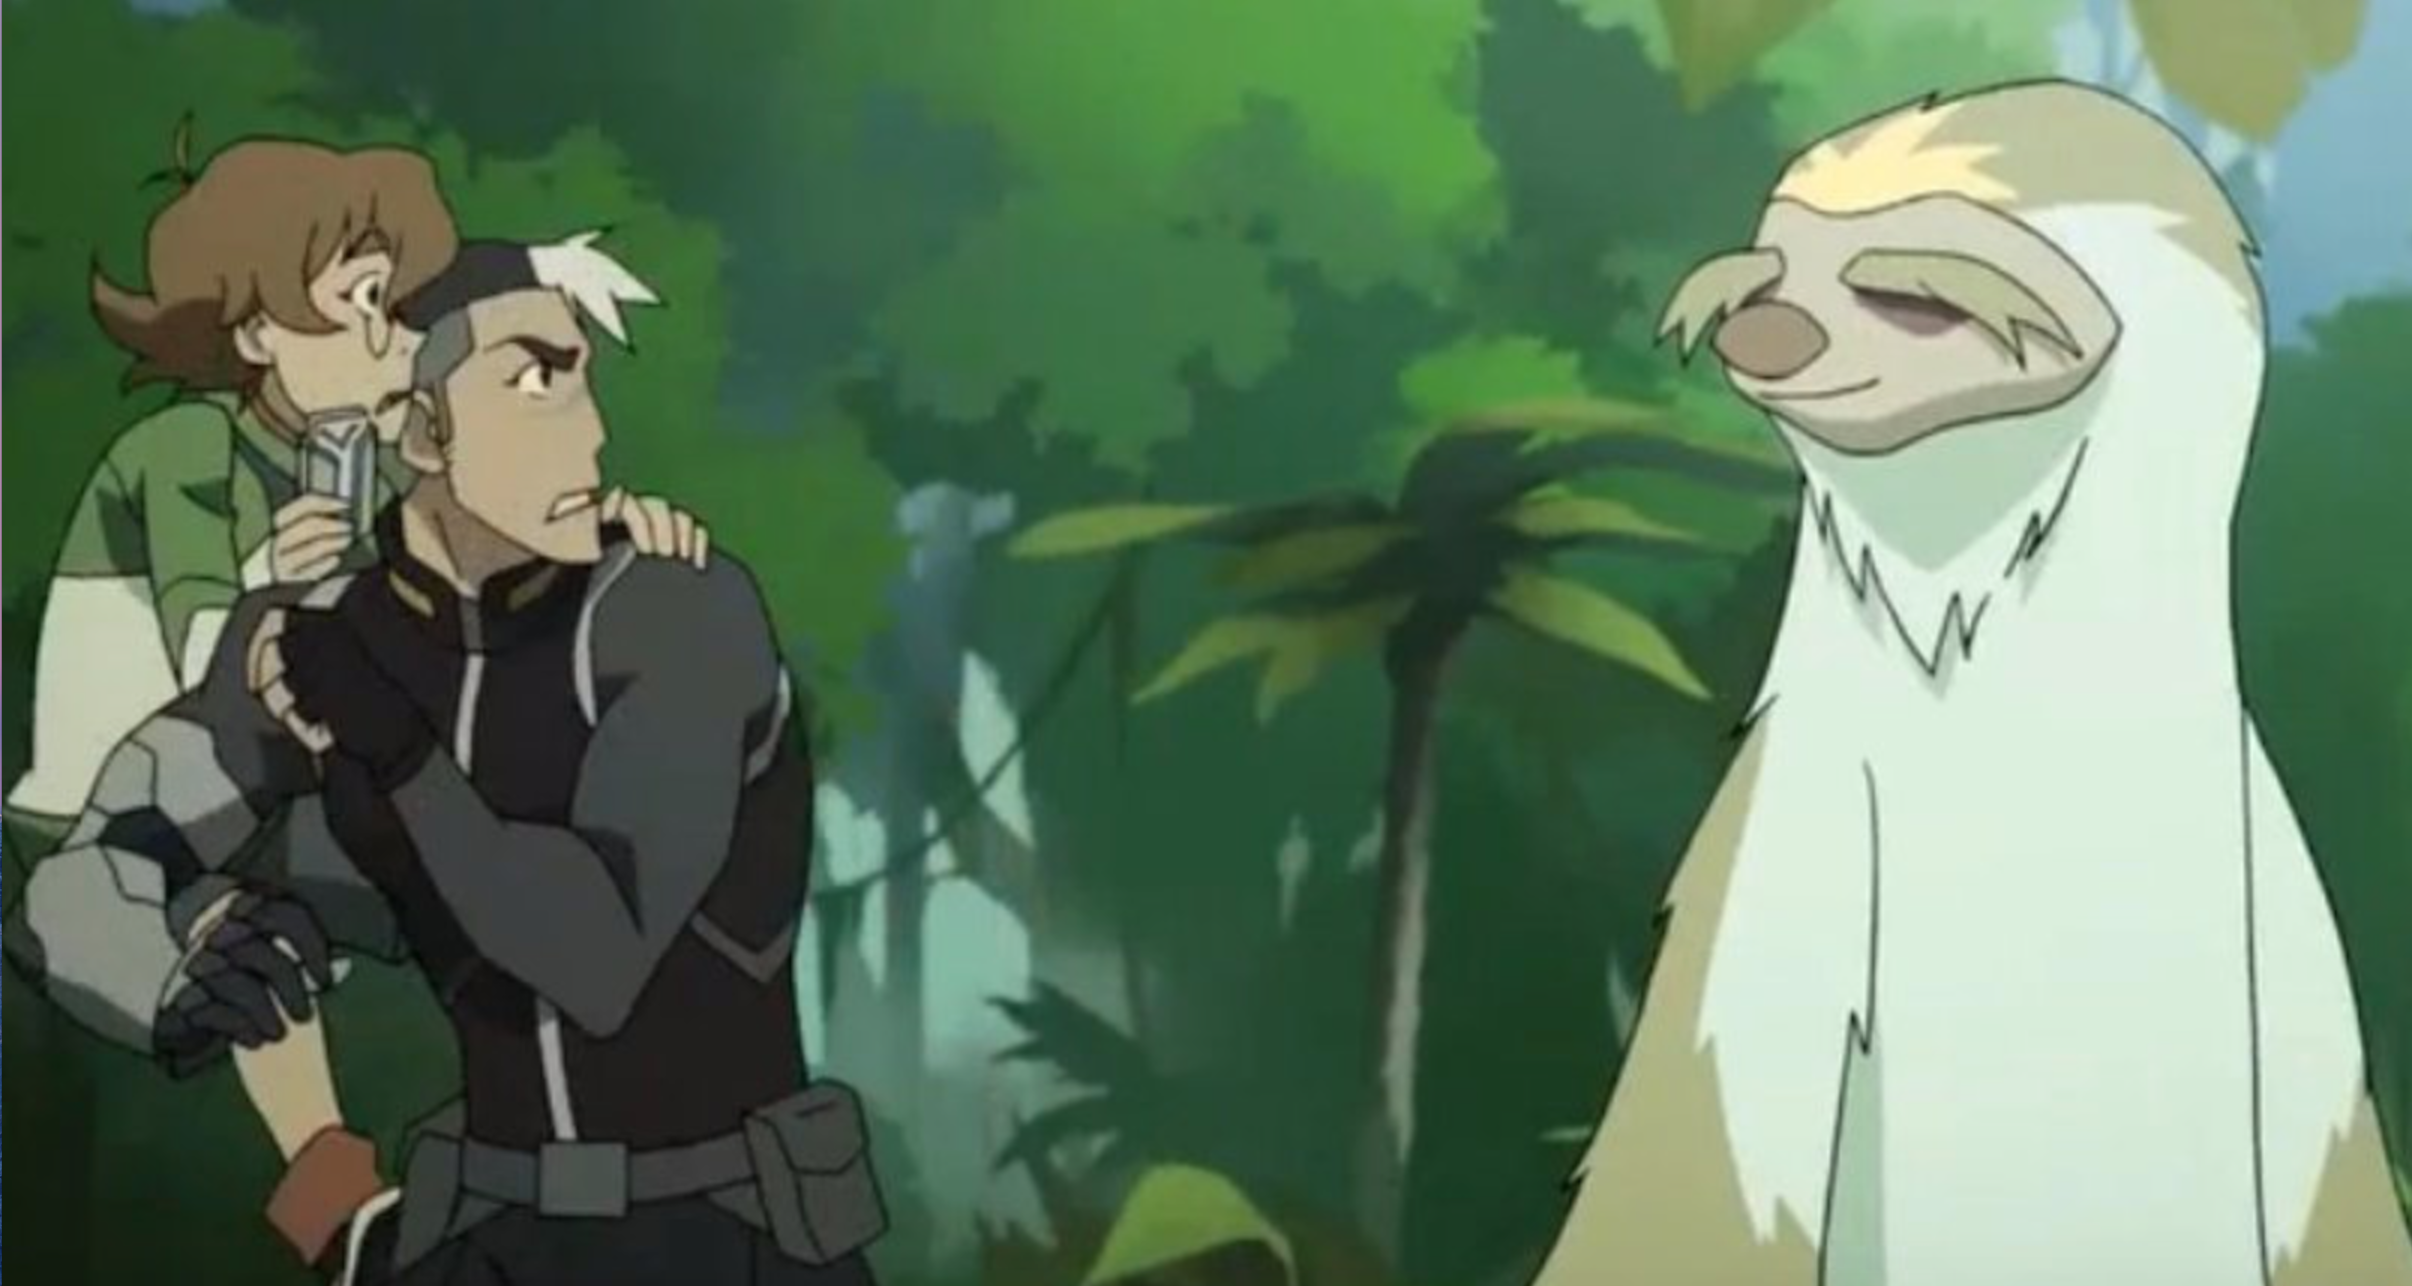 pidge and shiro jumped on top of each other in shock of